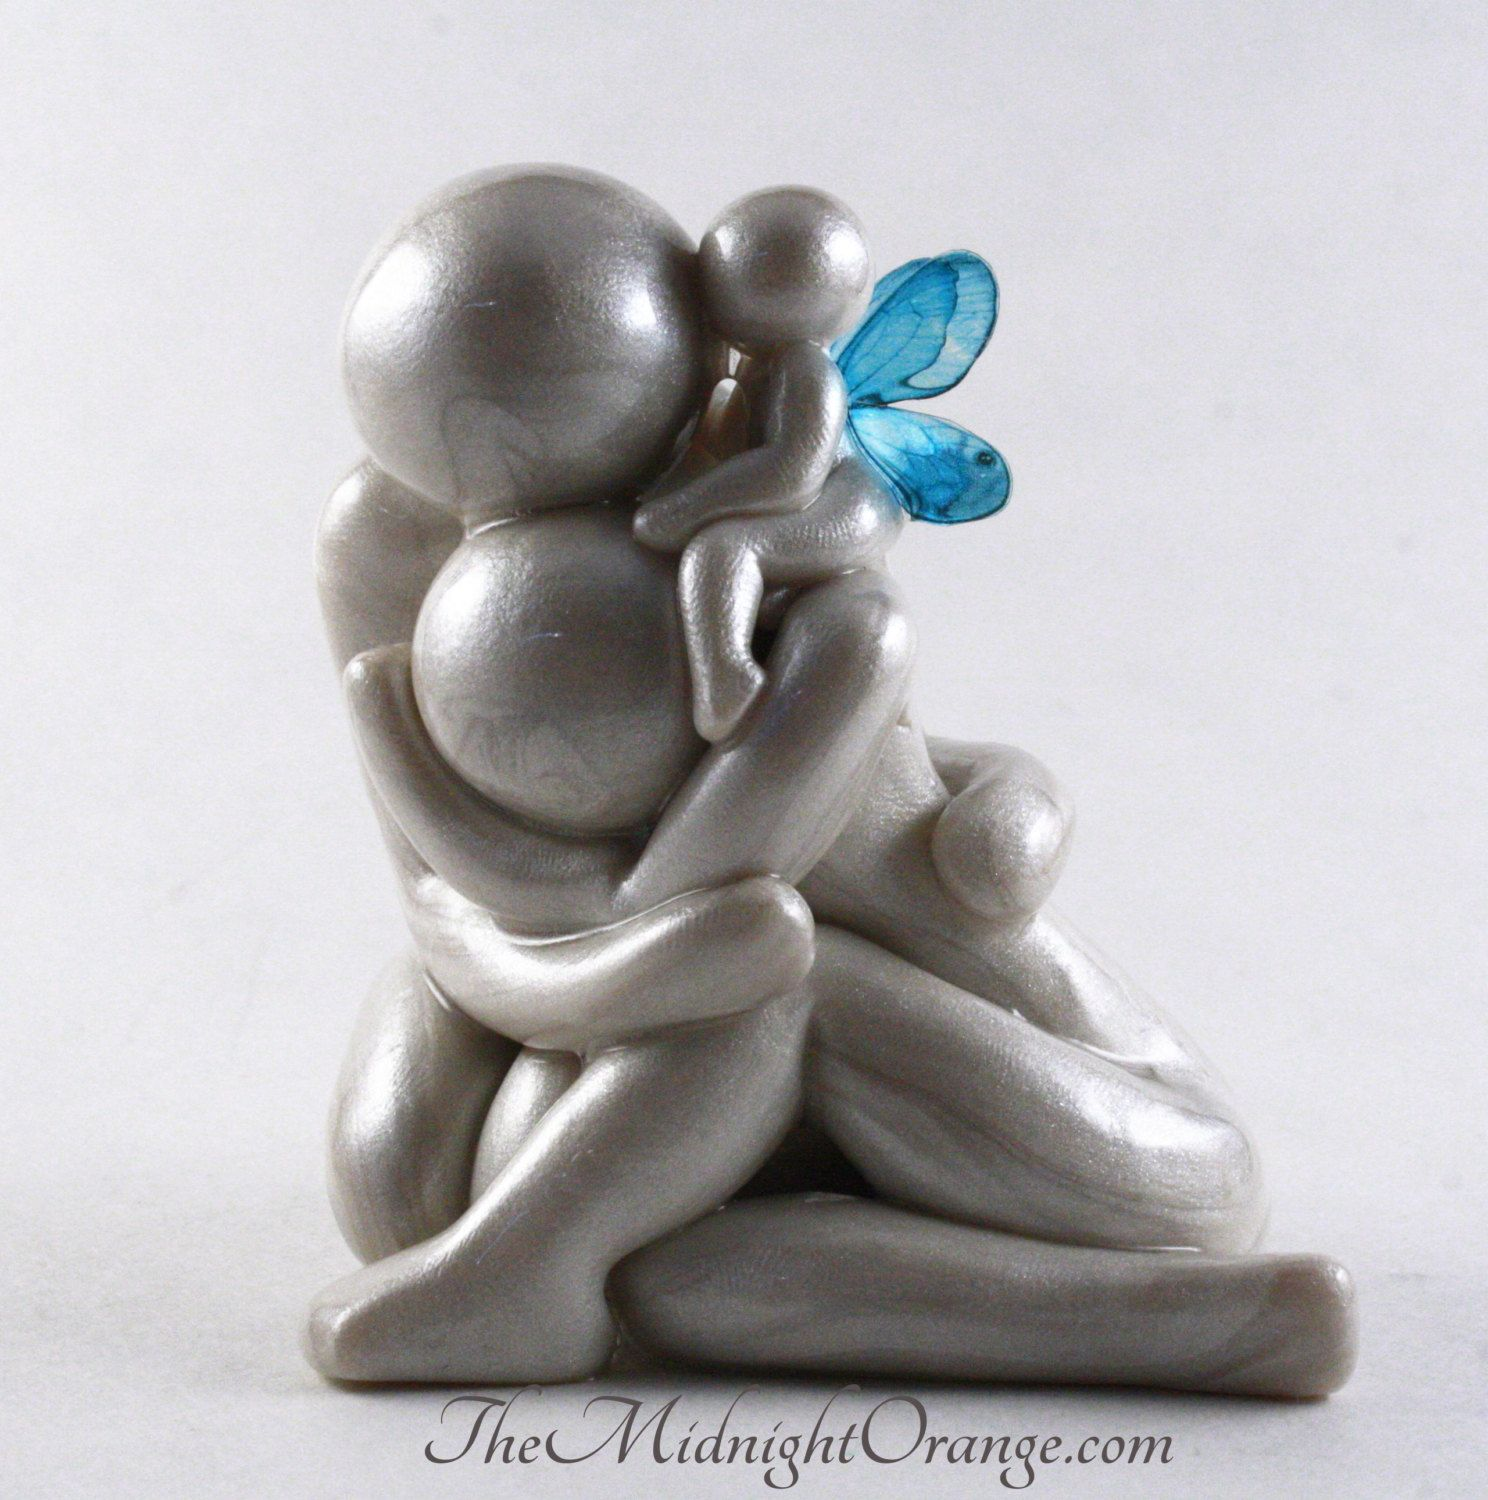 Child Loss Memorial Clay Sculpture Sympathy Gift For